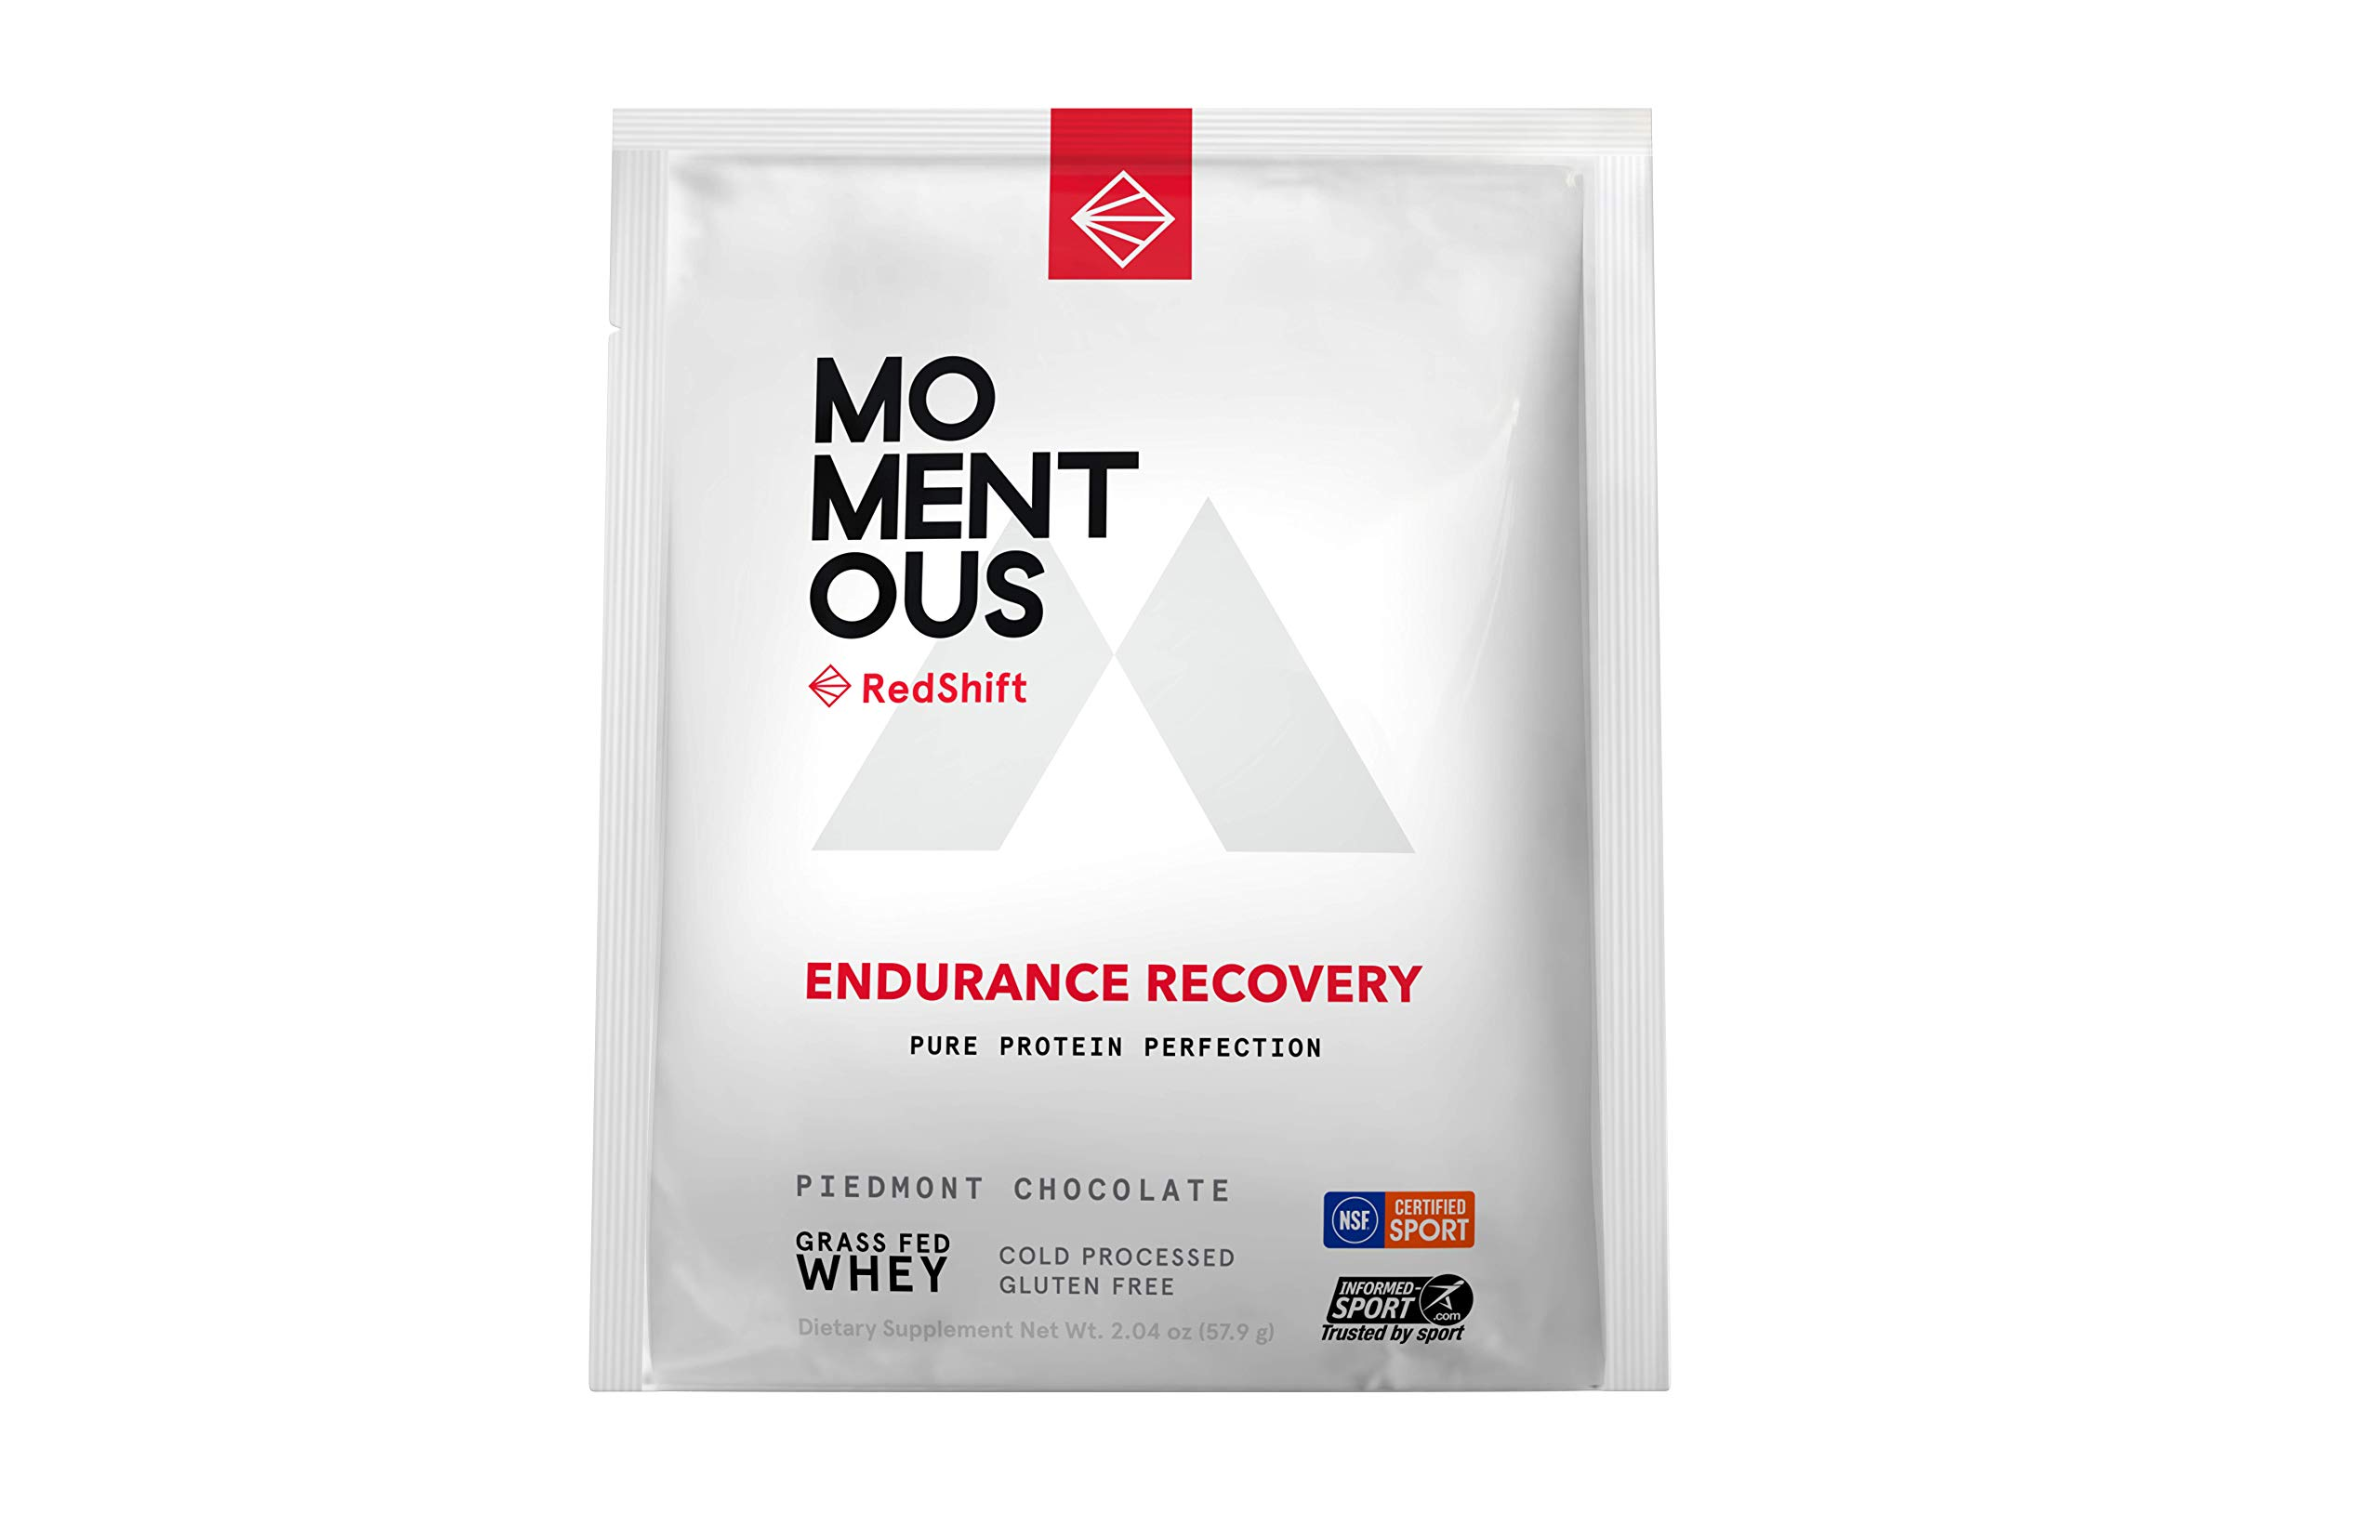 RedShift Grass-Fed Whey Protein Isolate, 14 Serving Pouches for Endurance Recovery, Post-Workout Protien Powder, Gluten-Free, NSF Certified Non GMO - Momentous (Chocolate)